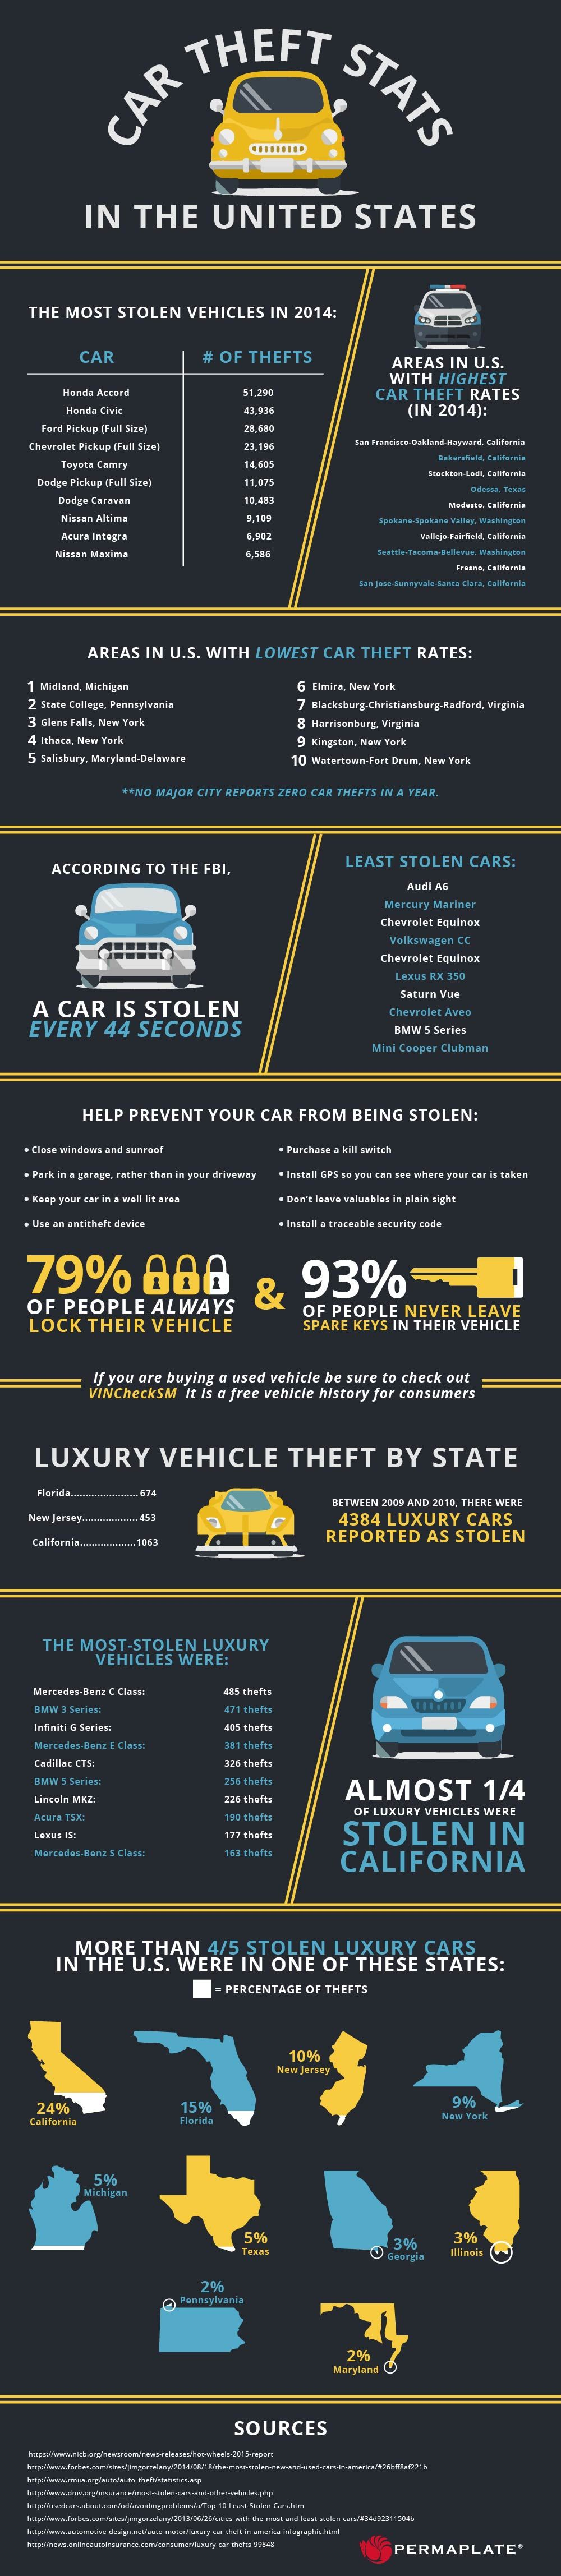 Car Theft Stats In The United States Infographic The Unit